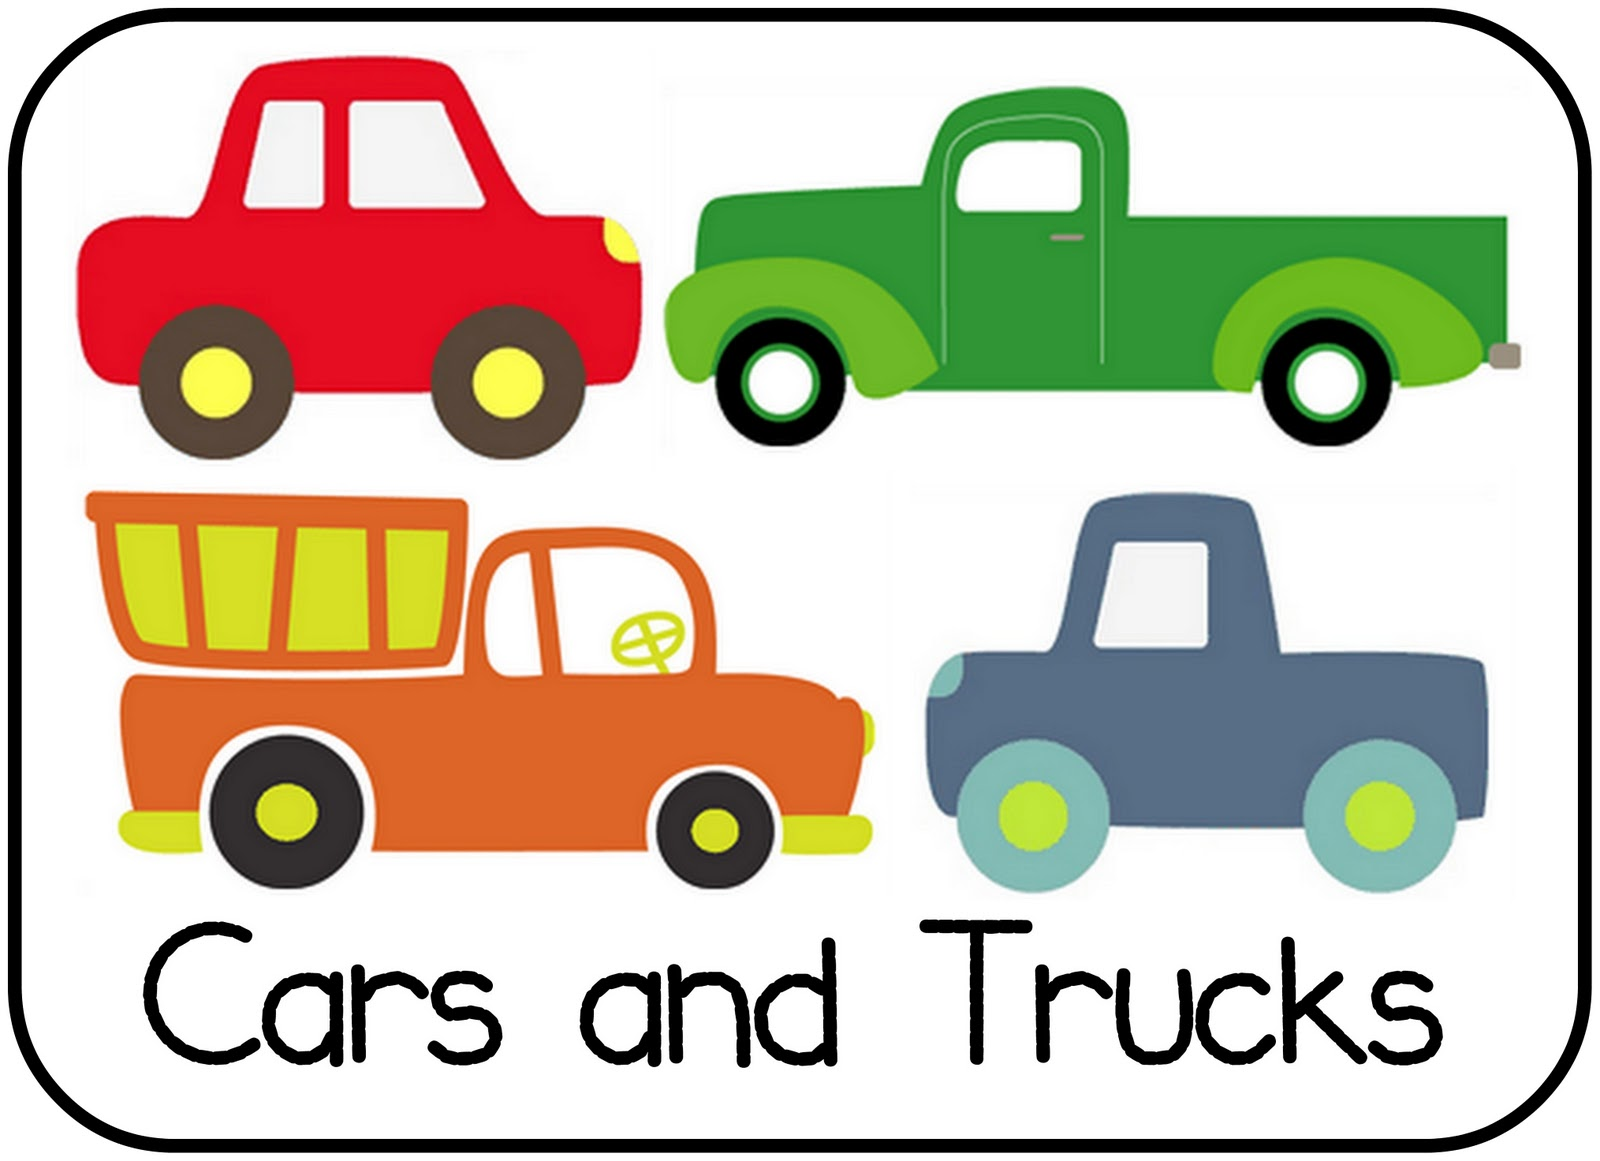 Toy Cars And Trucks : Images of toy cars and trucks pictures